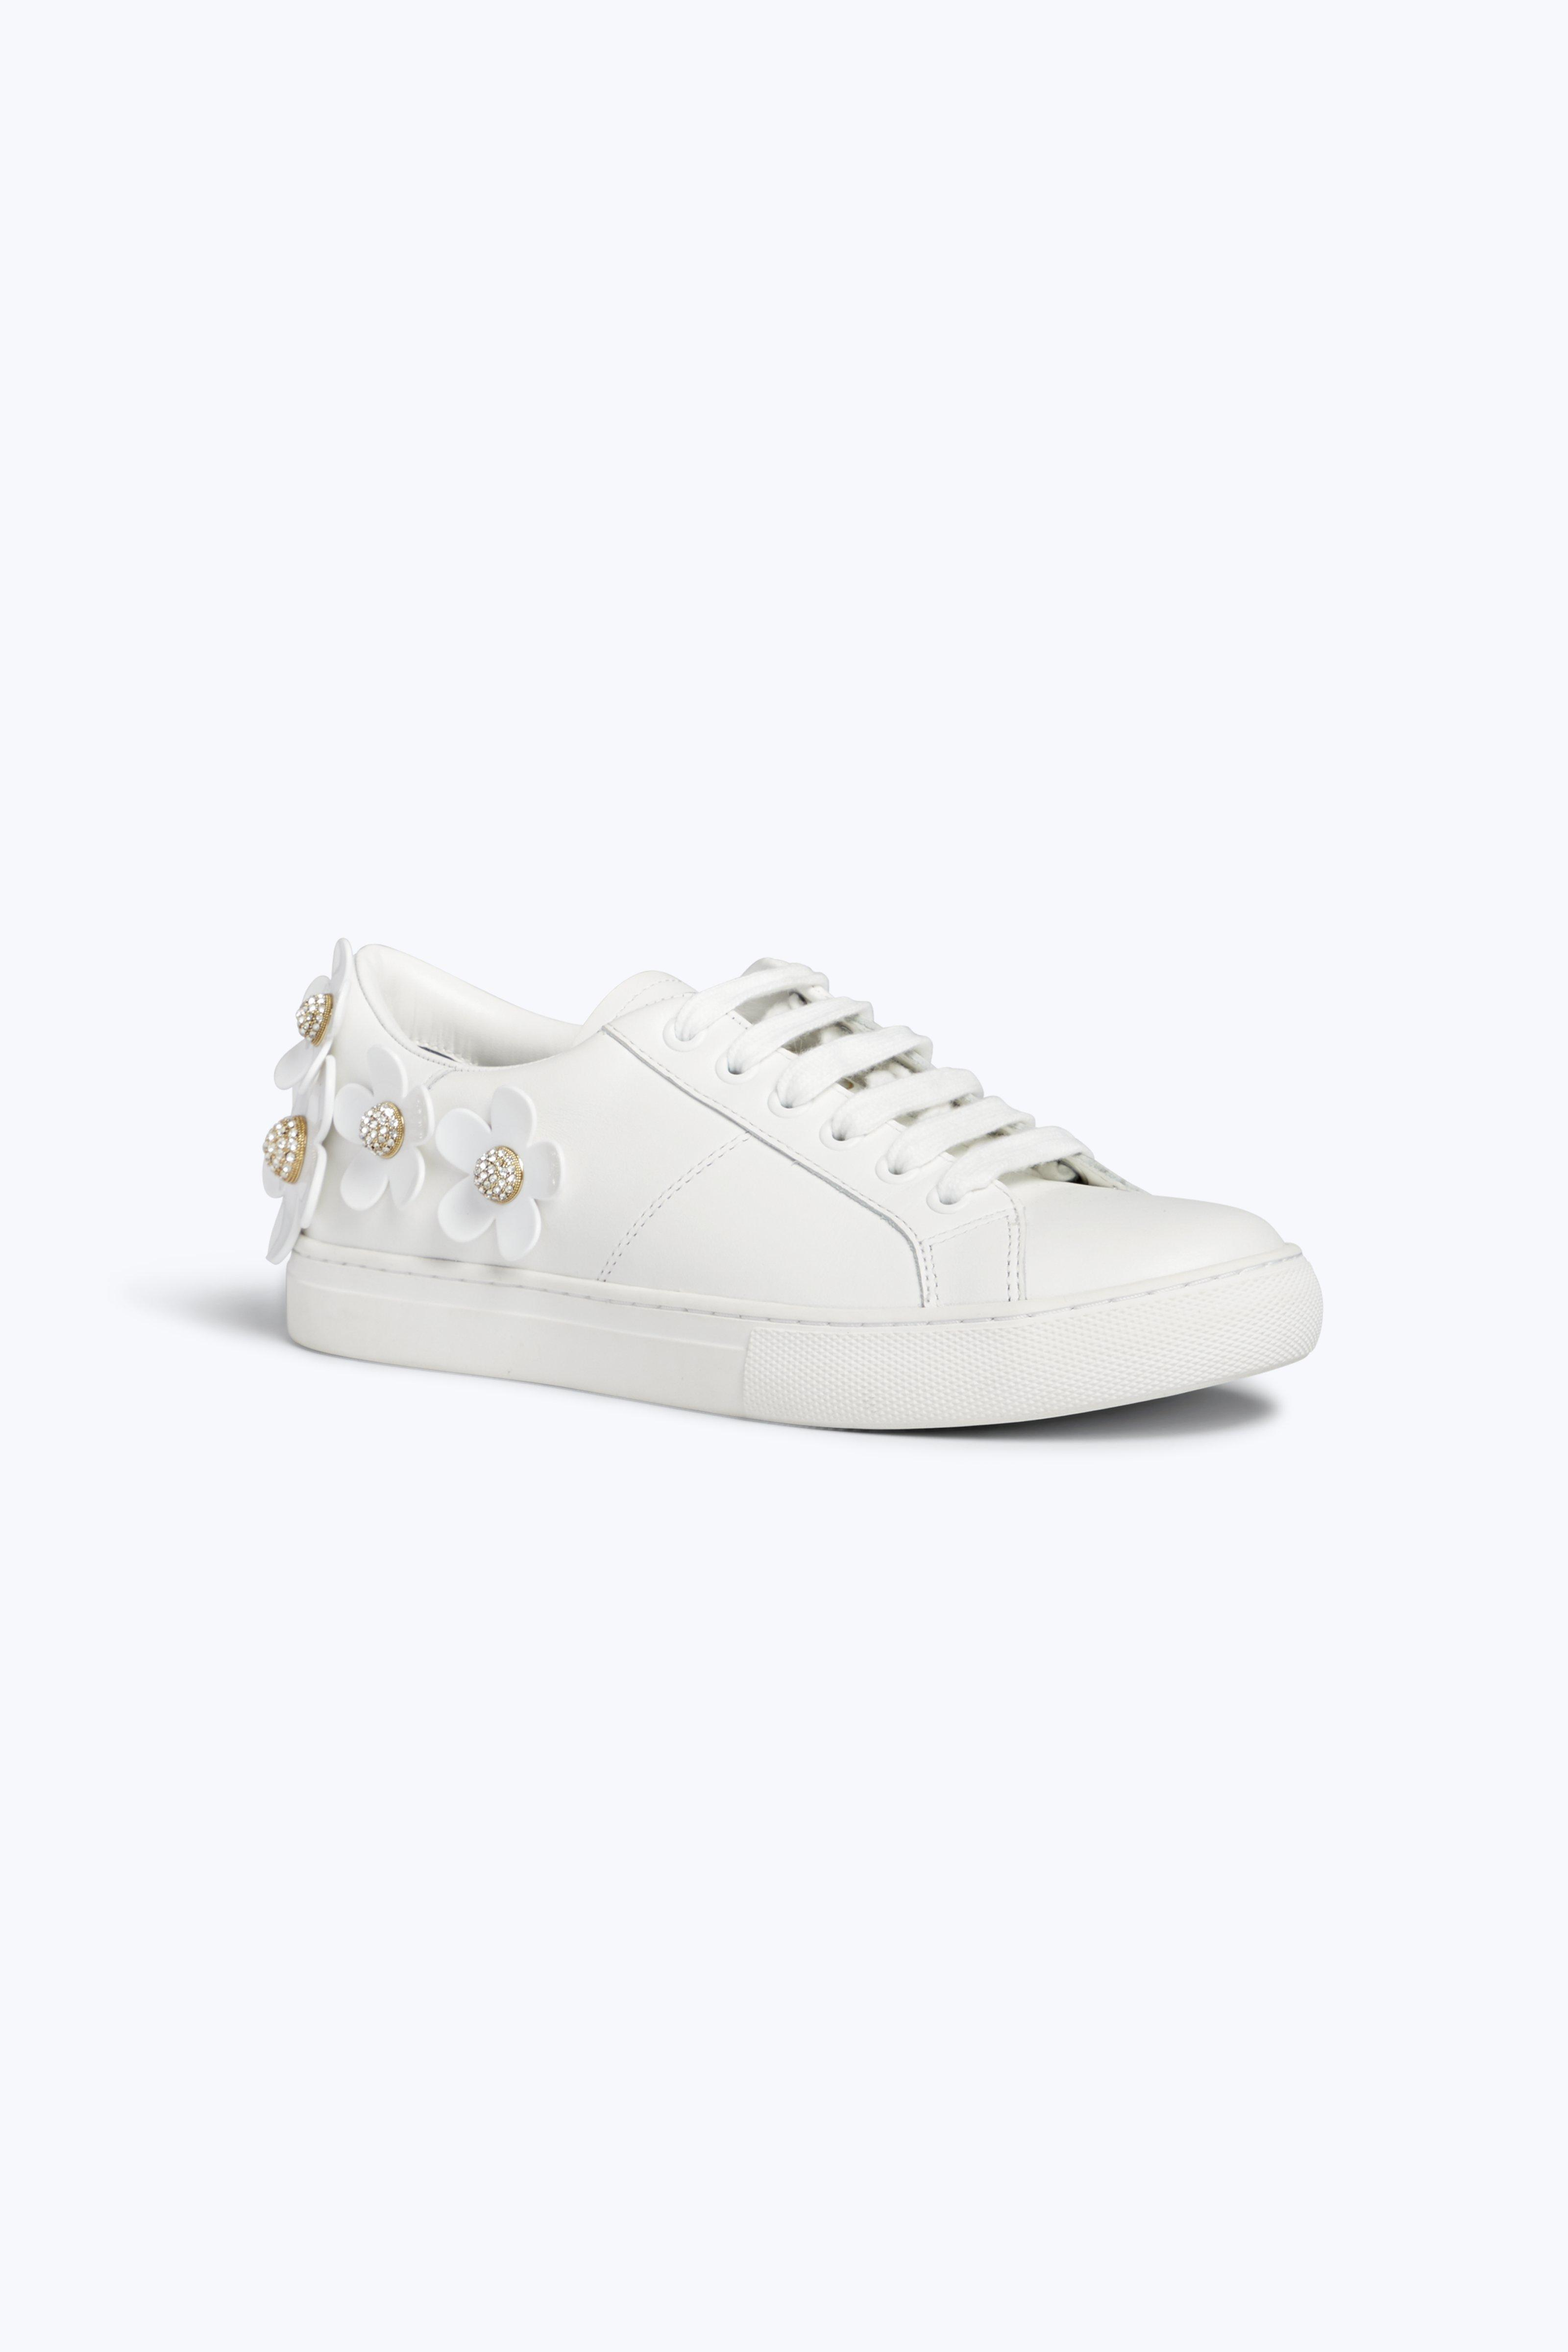 Daisy Appliquéd Metallic Leather Sneakers - Silver Marc Jacobs Wx2lBO8l5